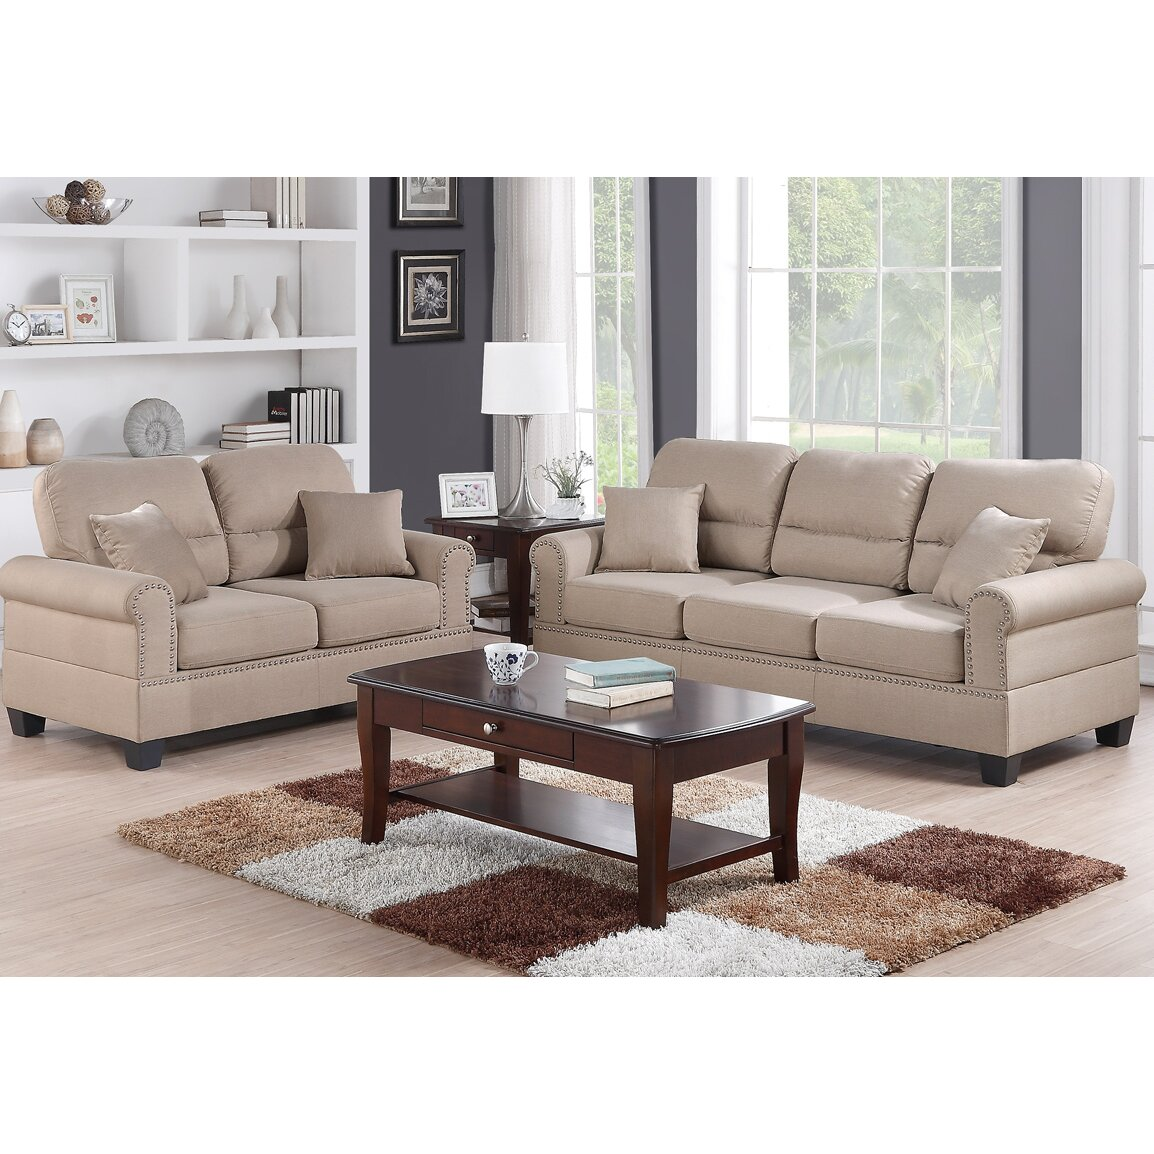 Poundex bobkona shelton sofa and loveseat set reviews for Living room collections